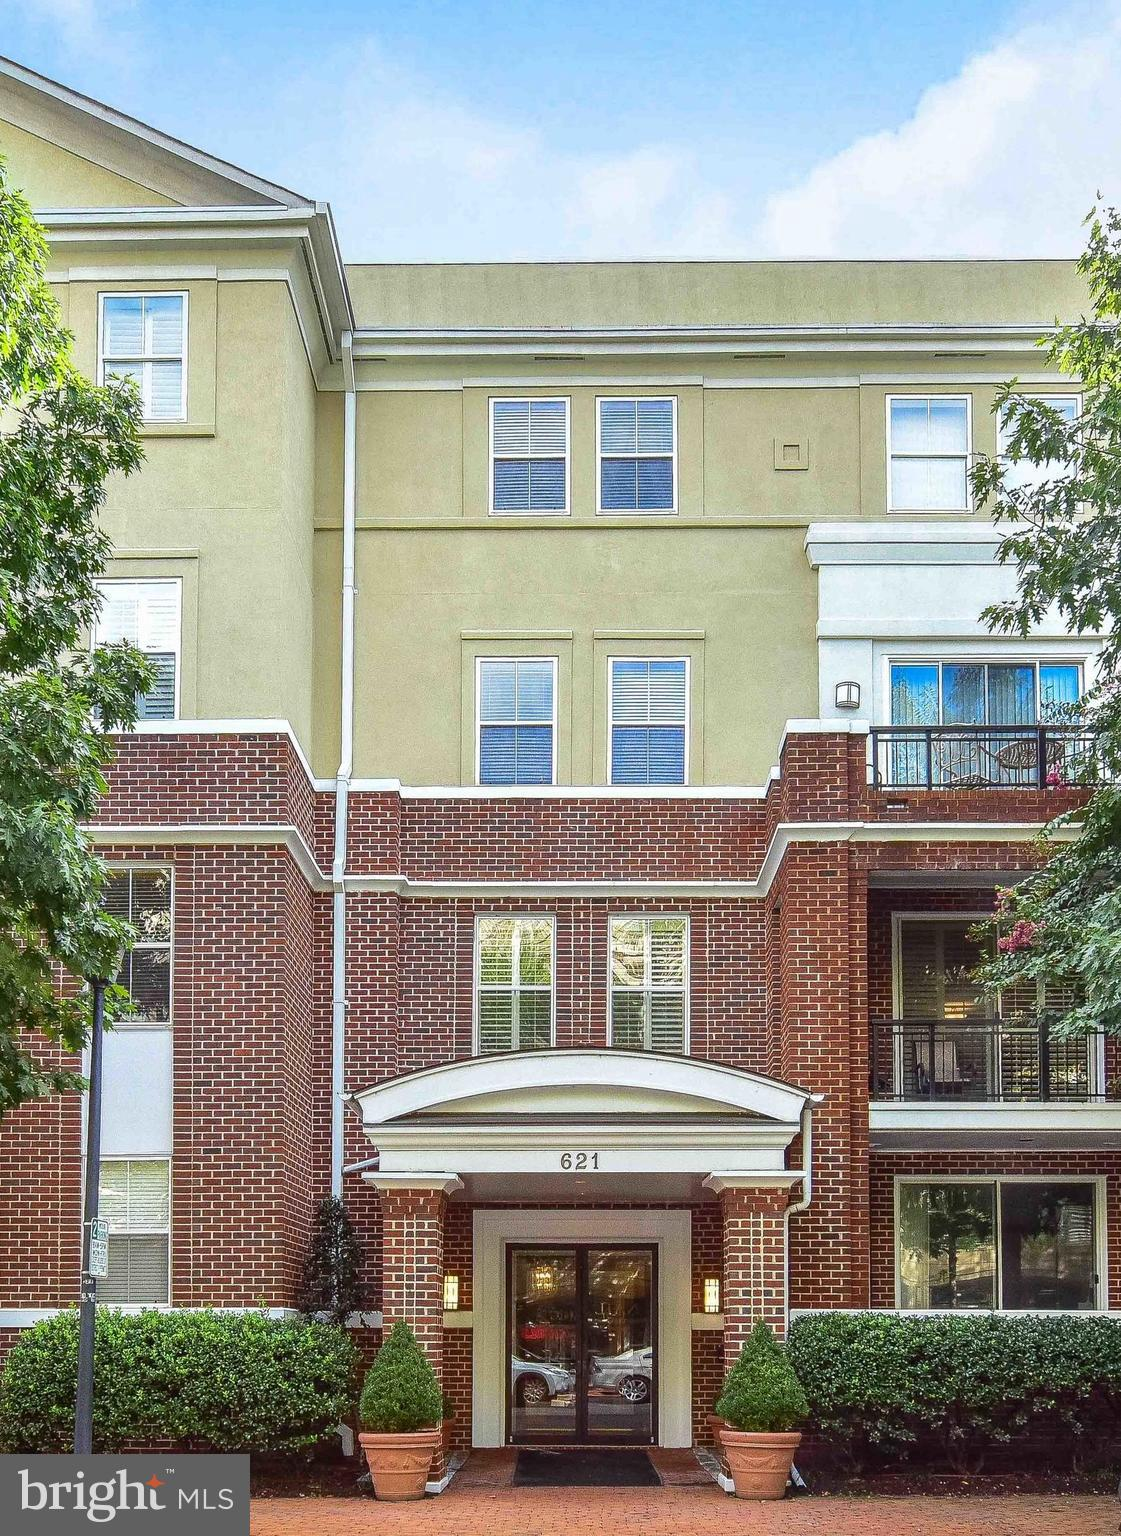 Rarely available 3 BR 2.5 BA condo flat, w/ priv balcony, 2 gar spaces & sep. storage rm  in the heart of Old Town. Beautiful kit w/ top grade appl. & cabinets + granite counters.Lots of natural light from 3 expos.  Expansive owner's suite has lg walk-in closet w/ built-ins, bath w/ double vanity, shower & sep soaking tub. Walk Score 92  Some of the furnishings are available under sep bill of sale